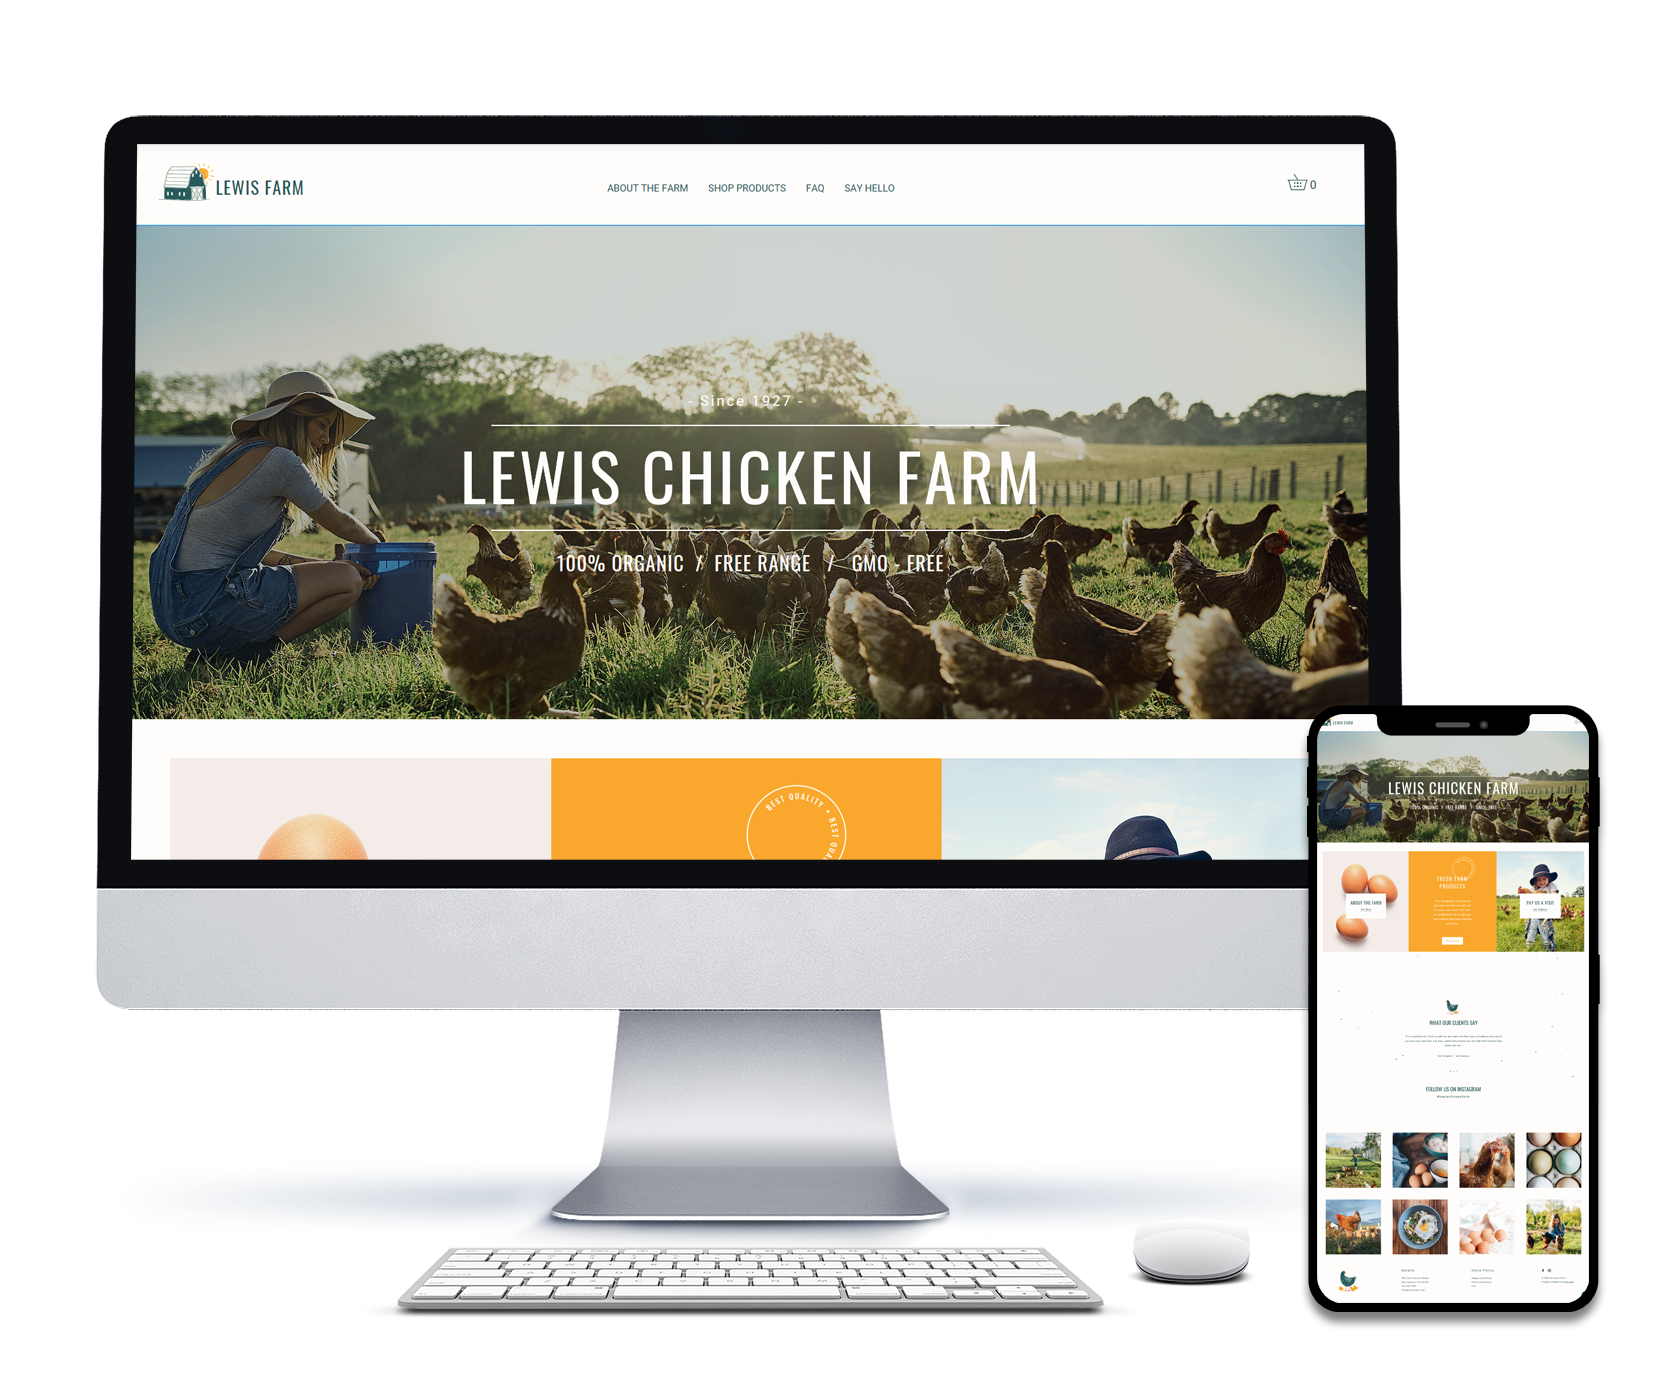 LEWIS CHICKEN FARM